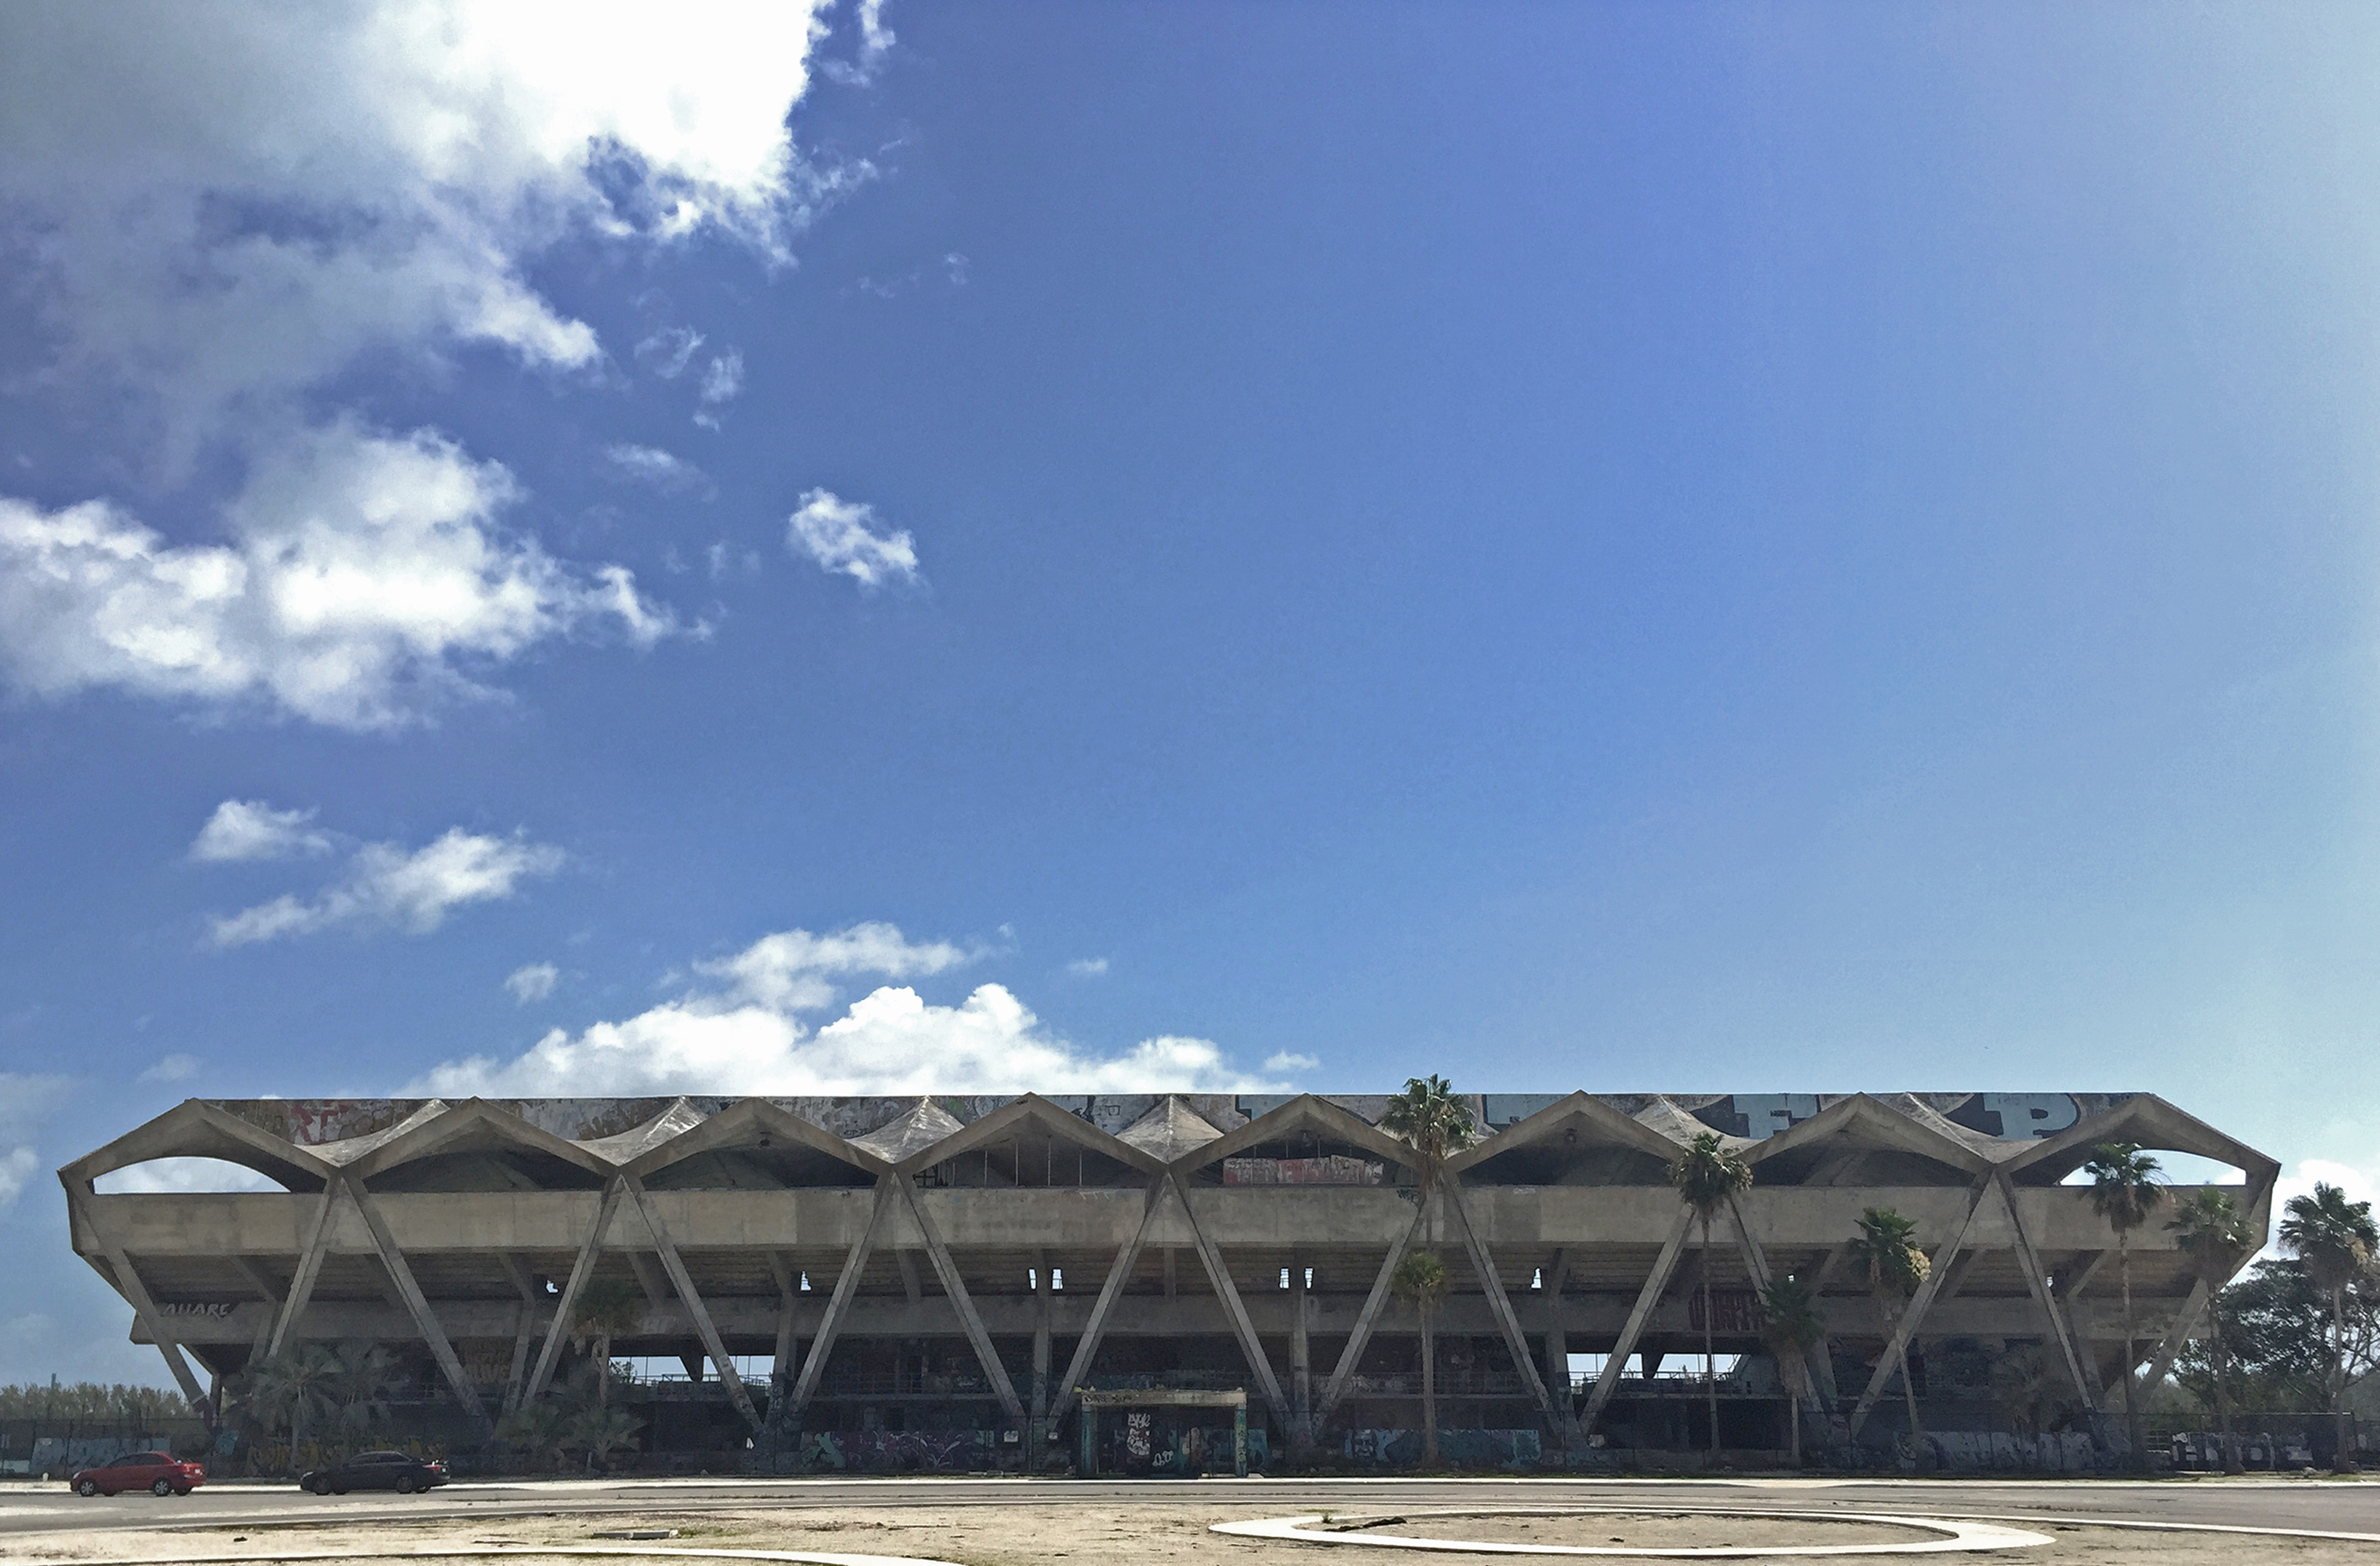 Miami Marine Stadium, summer 2018.